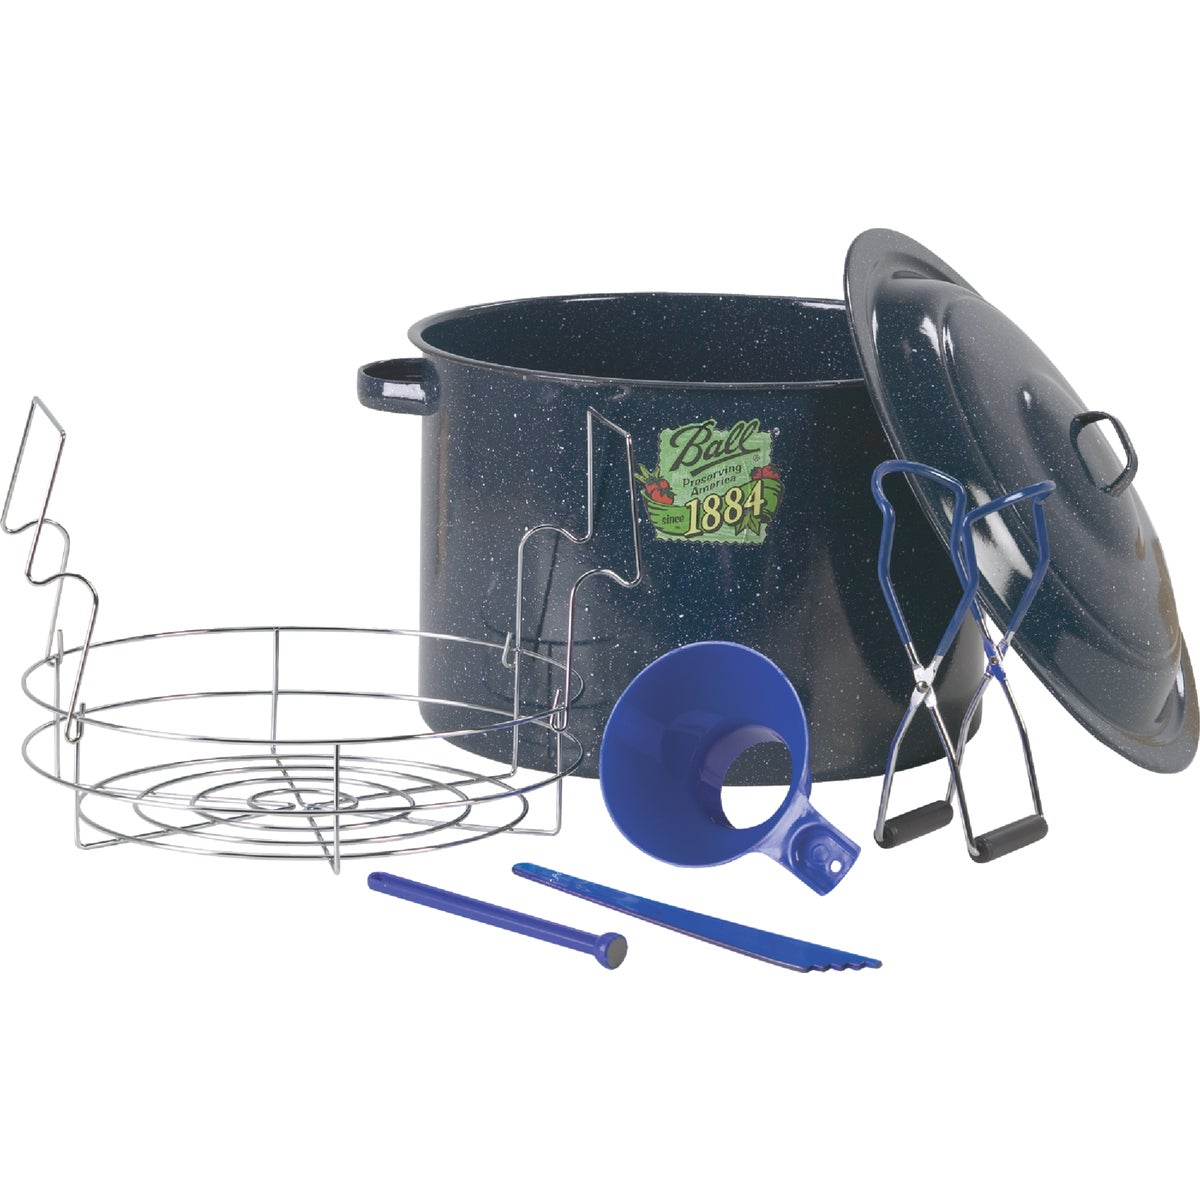 CANNING KIT W/UTENSILS